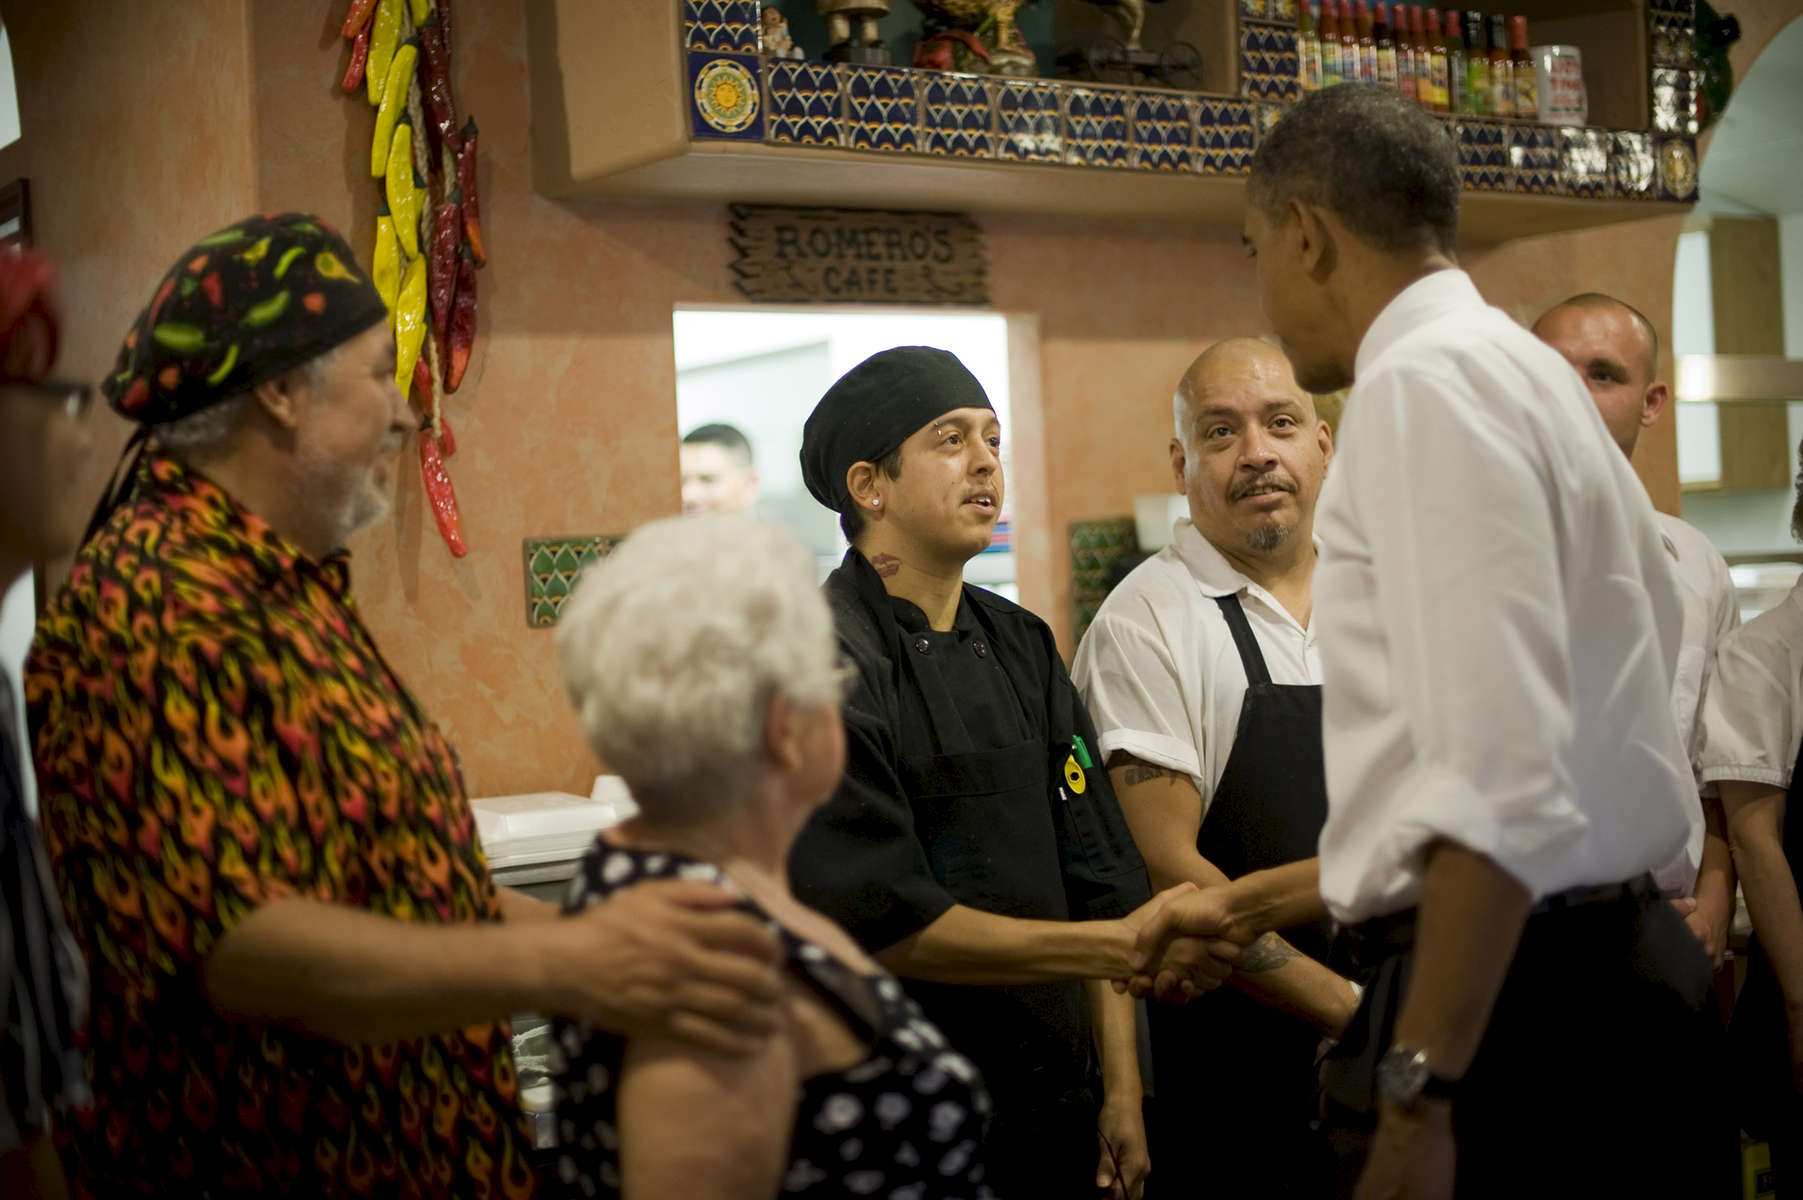 August 9, 2012 - PUEBLO, CO: President Barack Obama greets the staff and owners of Romero's Cafe in Pueblo, Colorado. (Scout Tufankjian for Obama for America/Polaris)